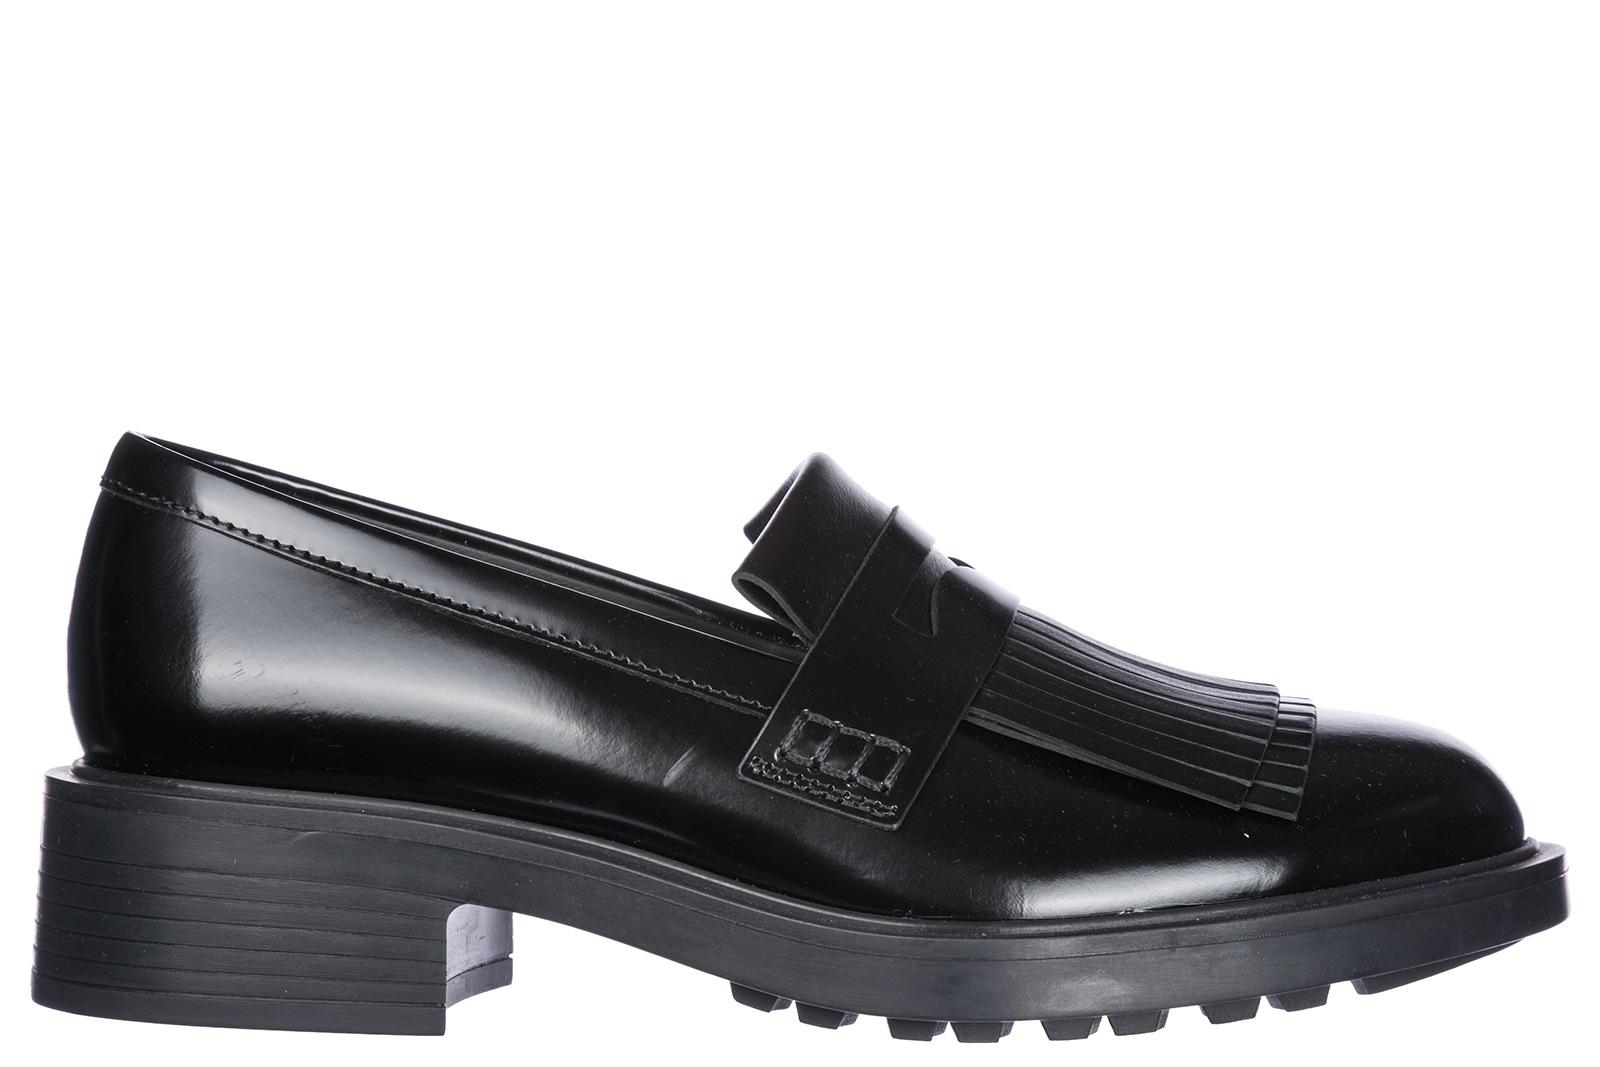 Hogan Women's Leather Loafers Moccasins H332 In Black | ModeSens